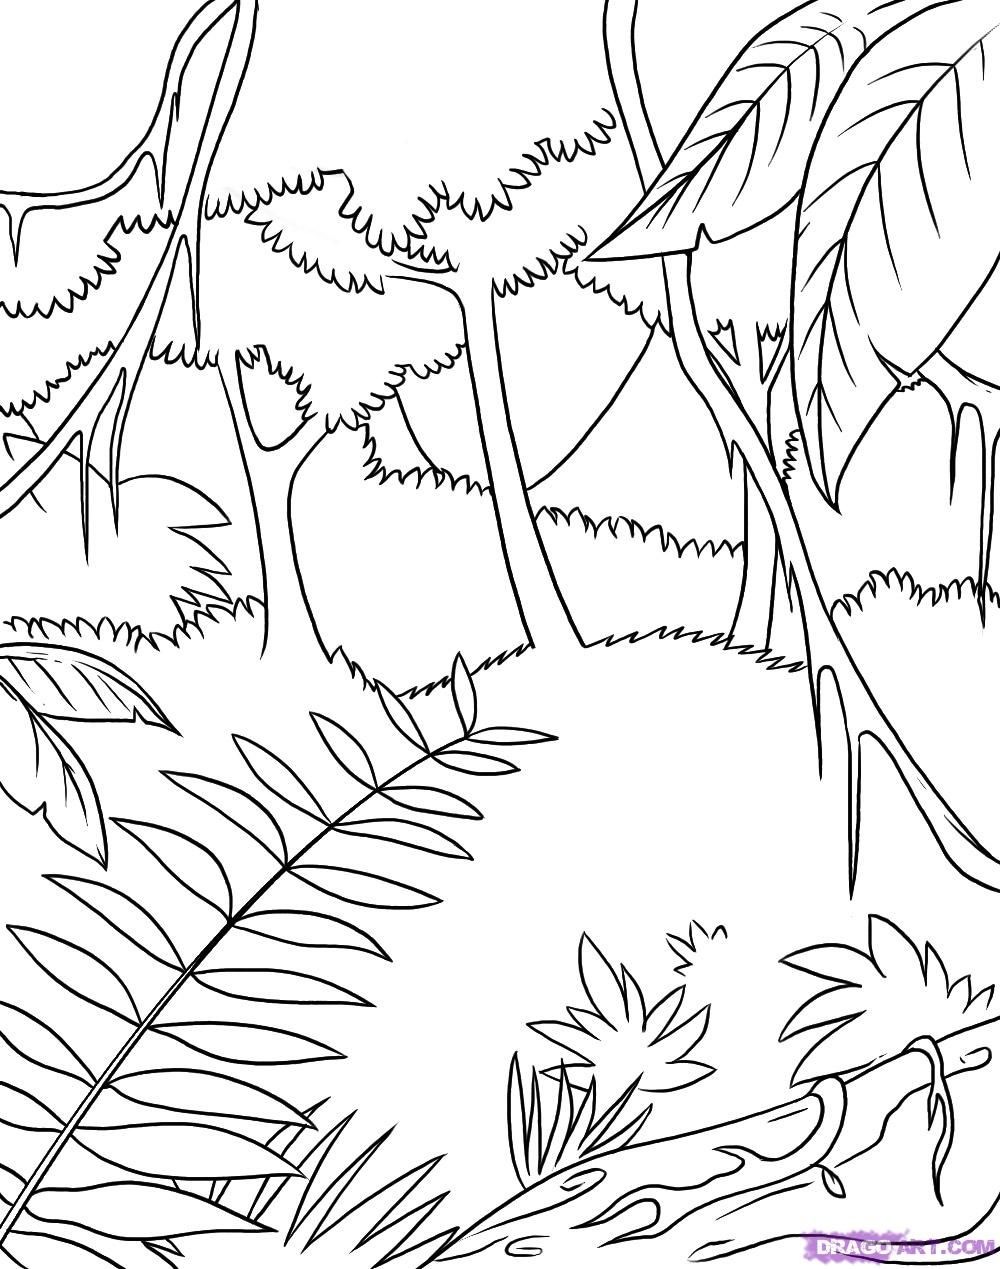 amazon rainforest pictures to print free rainforest coloring pages free coloring pages to rainforest amazon pictures print